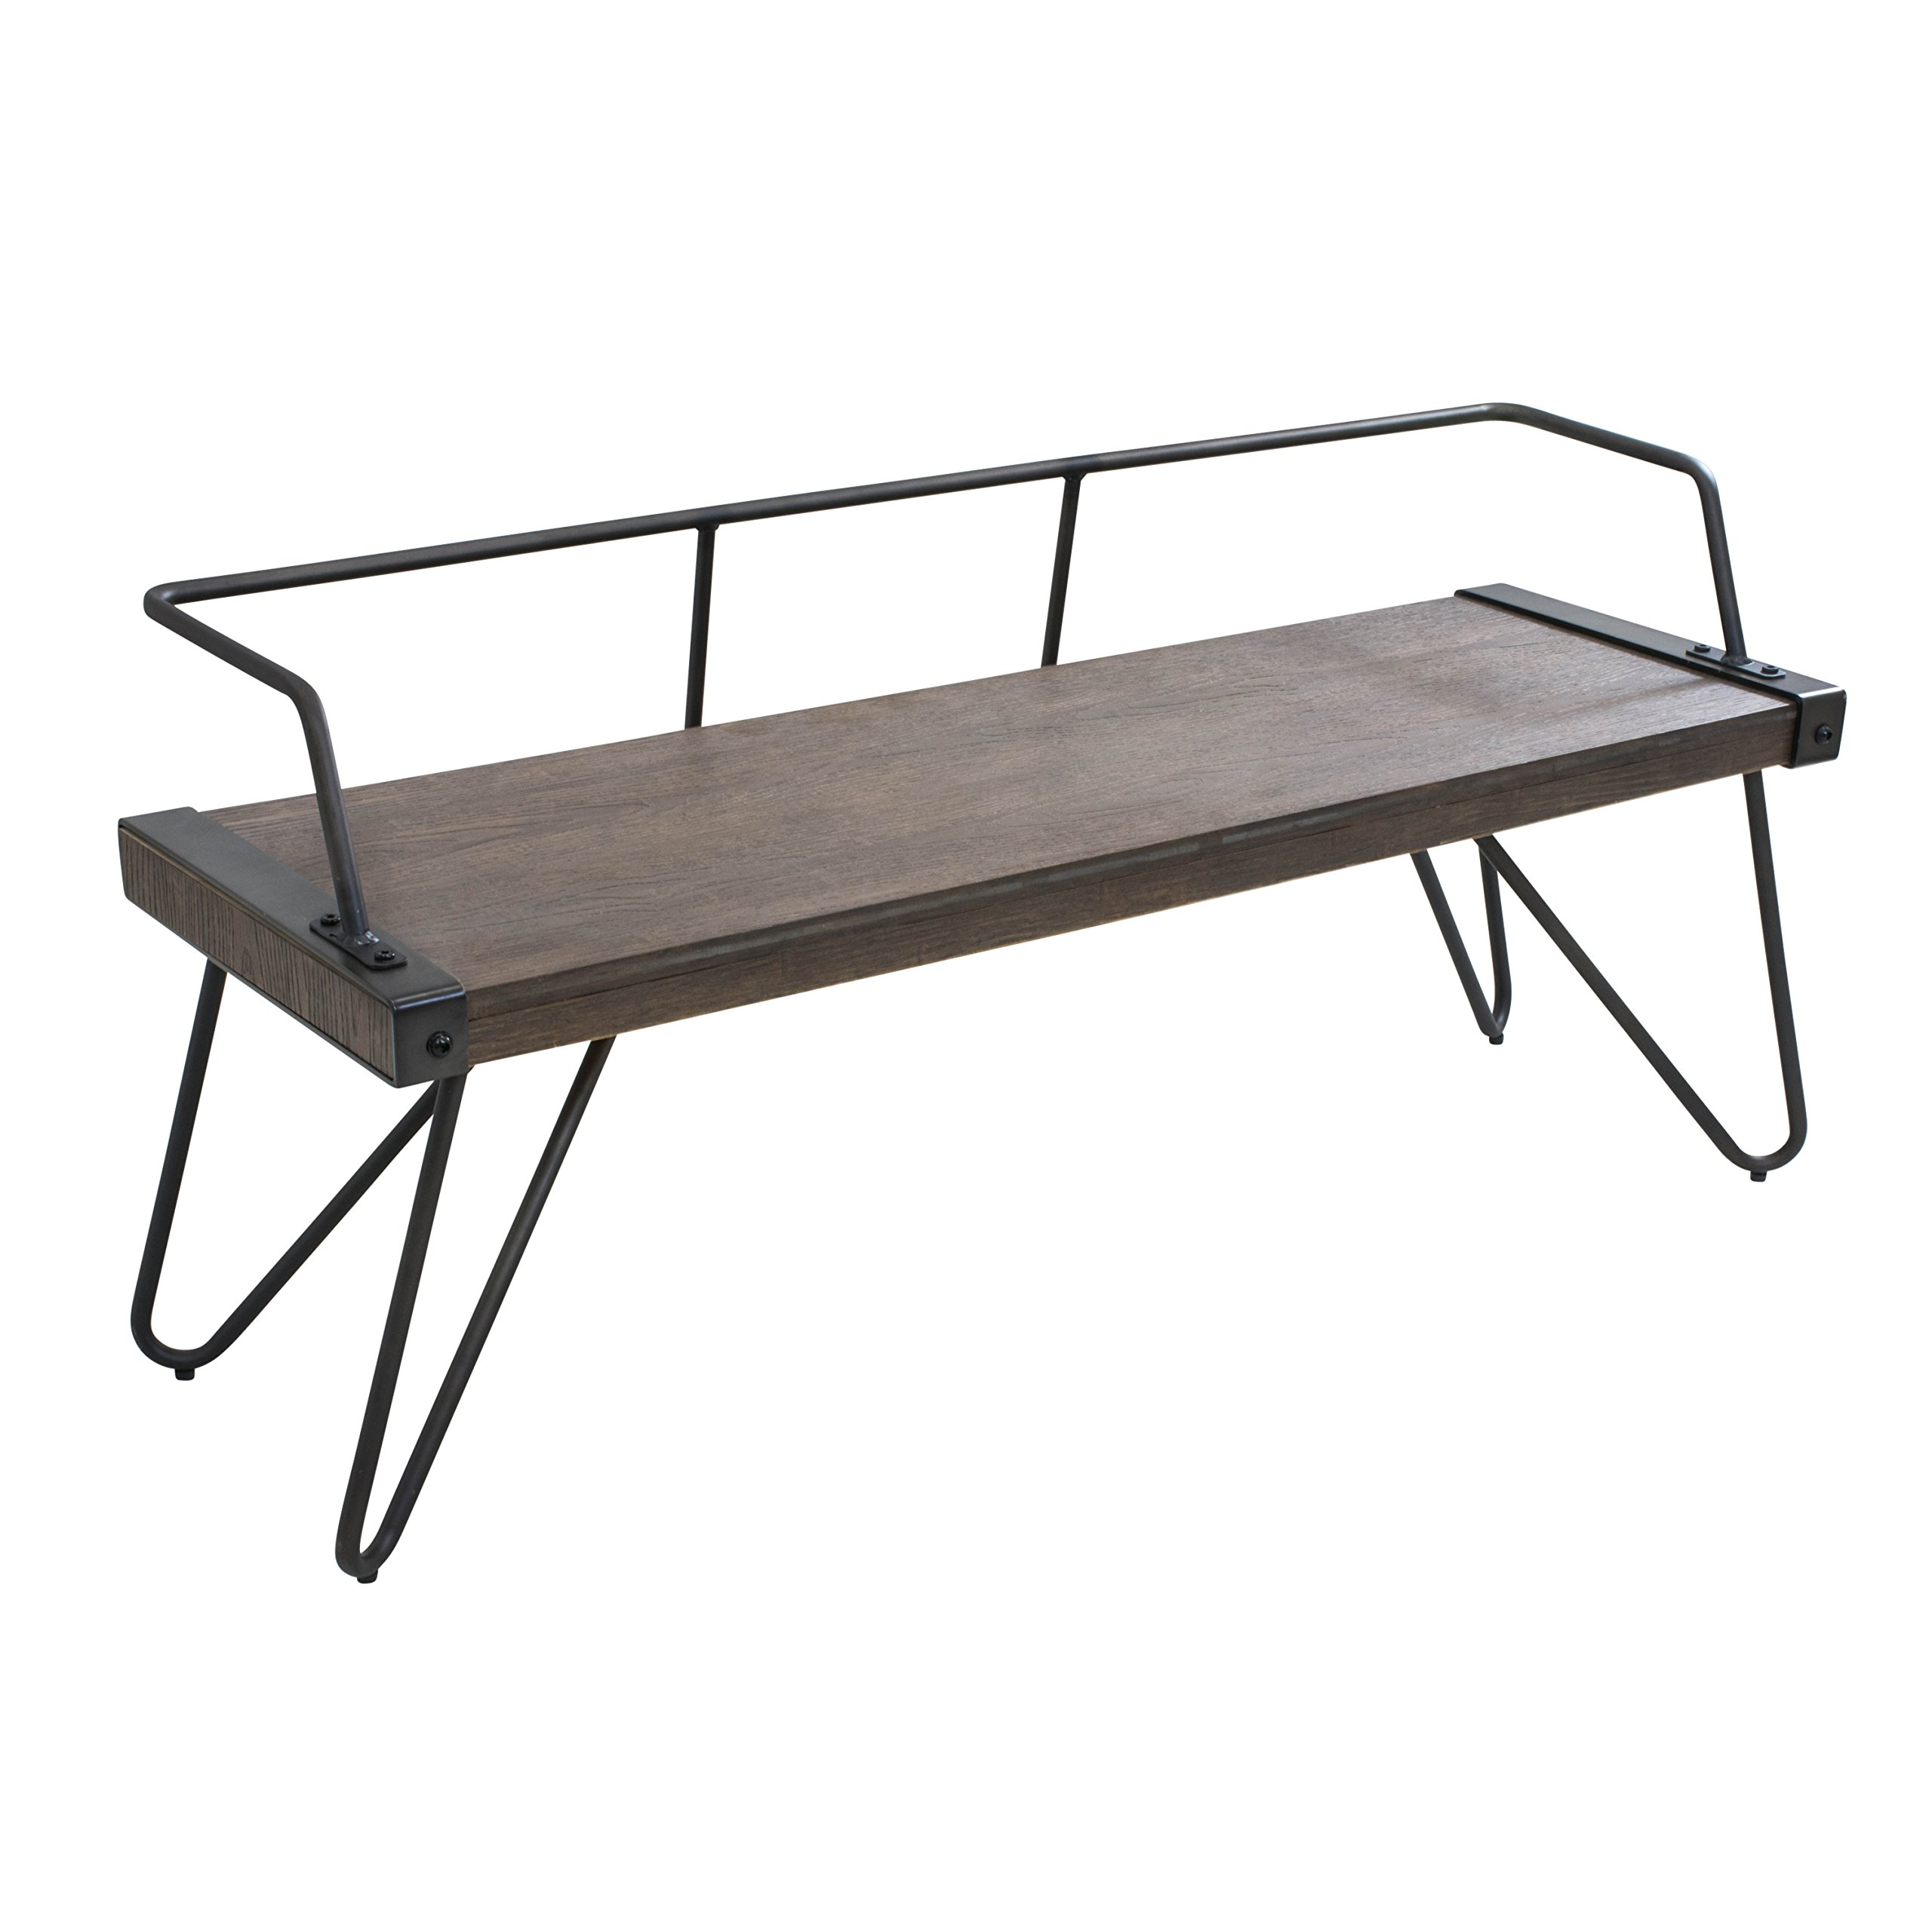 WOYBR DC-STFBEN WL+AN Wood, Metal Stefani Bench